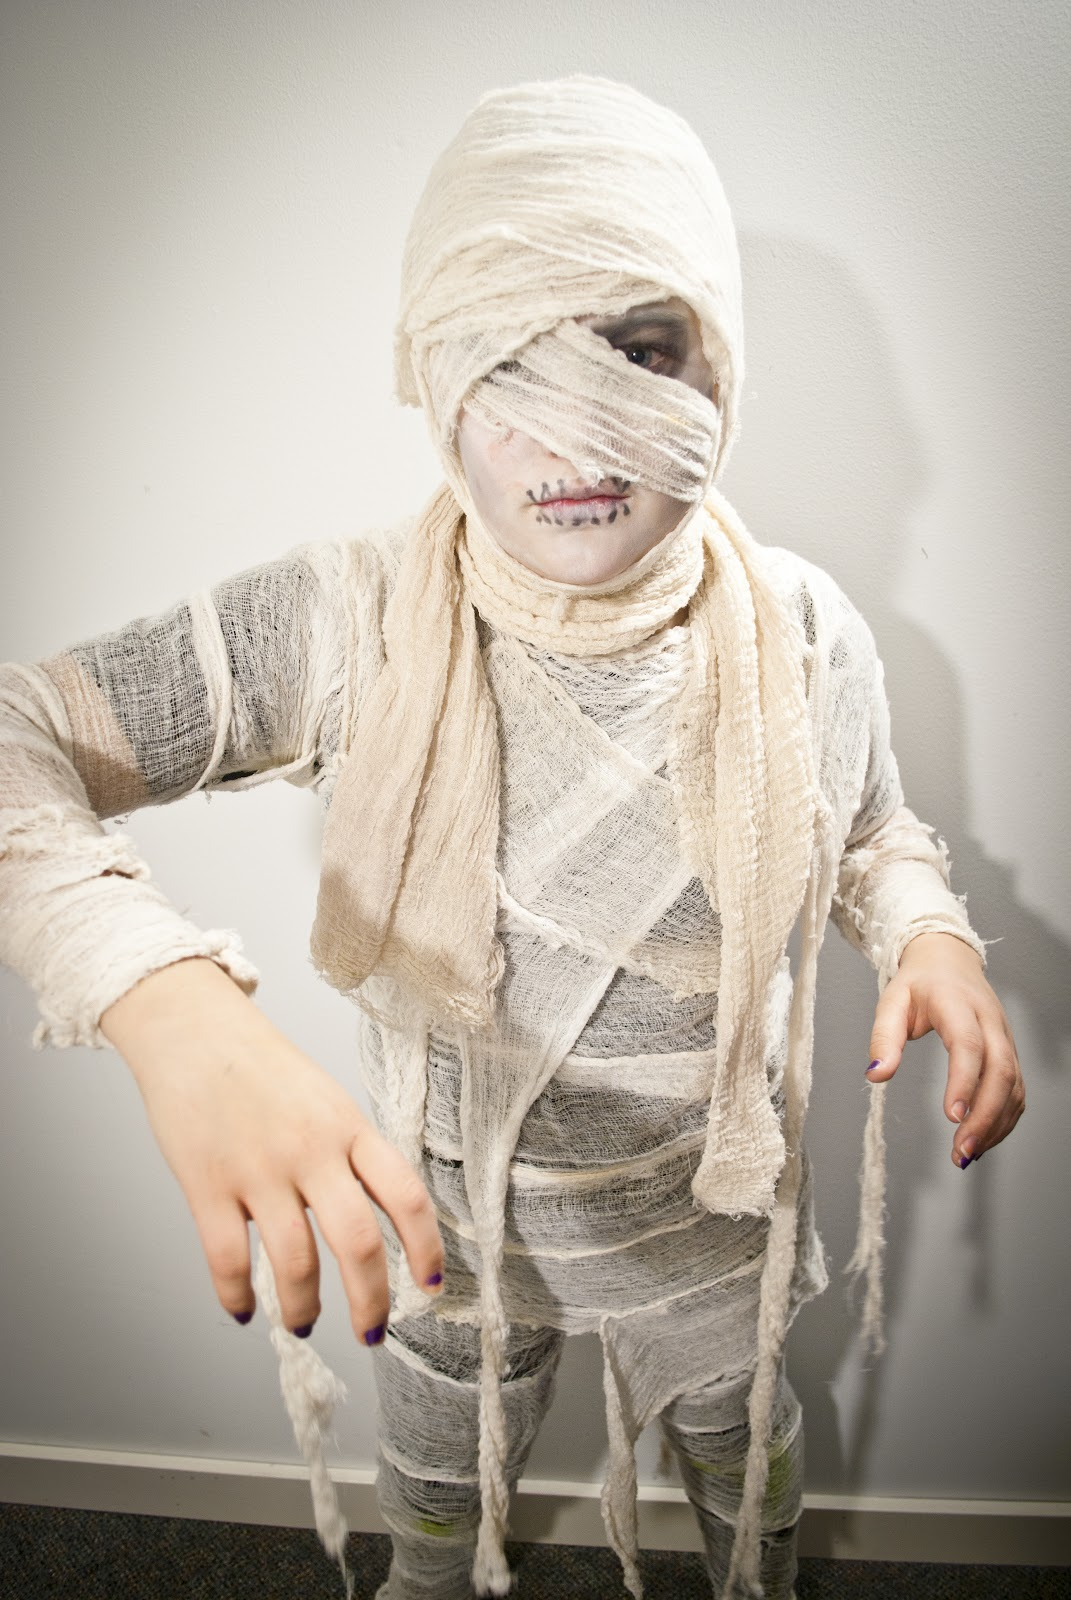 How To Be A Mummy For Halloween